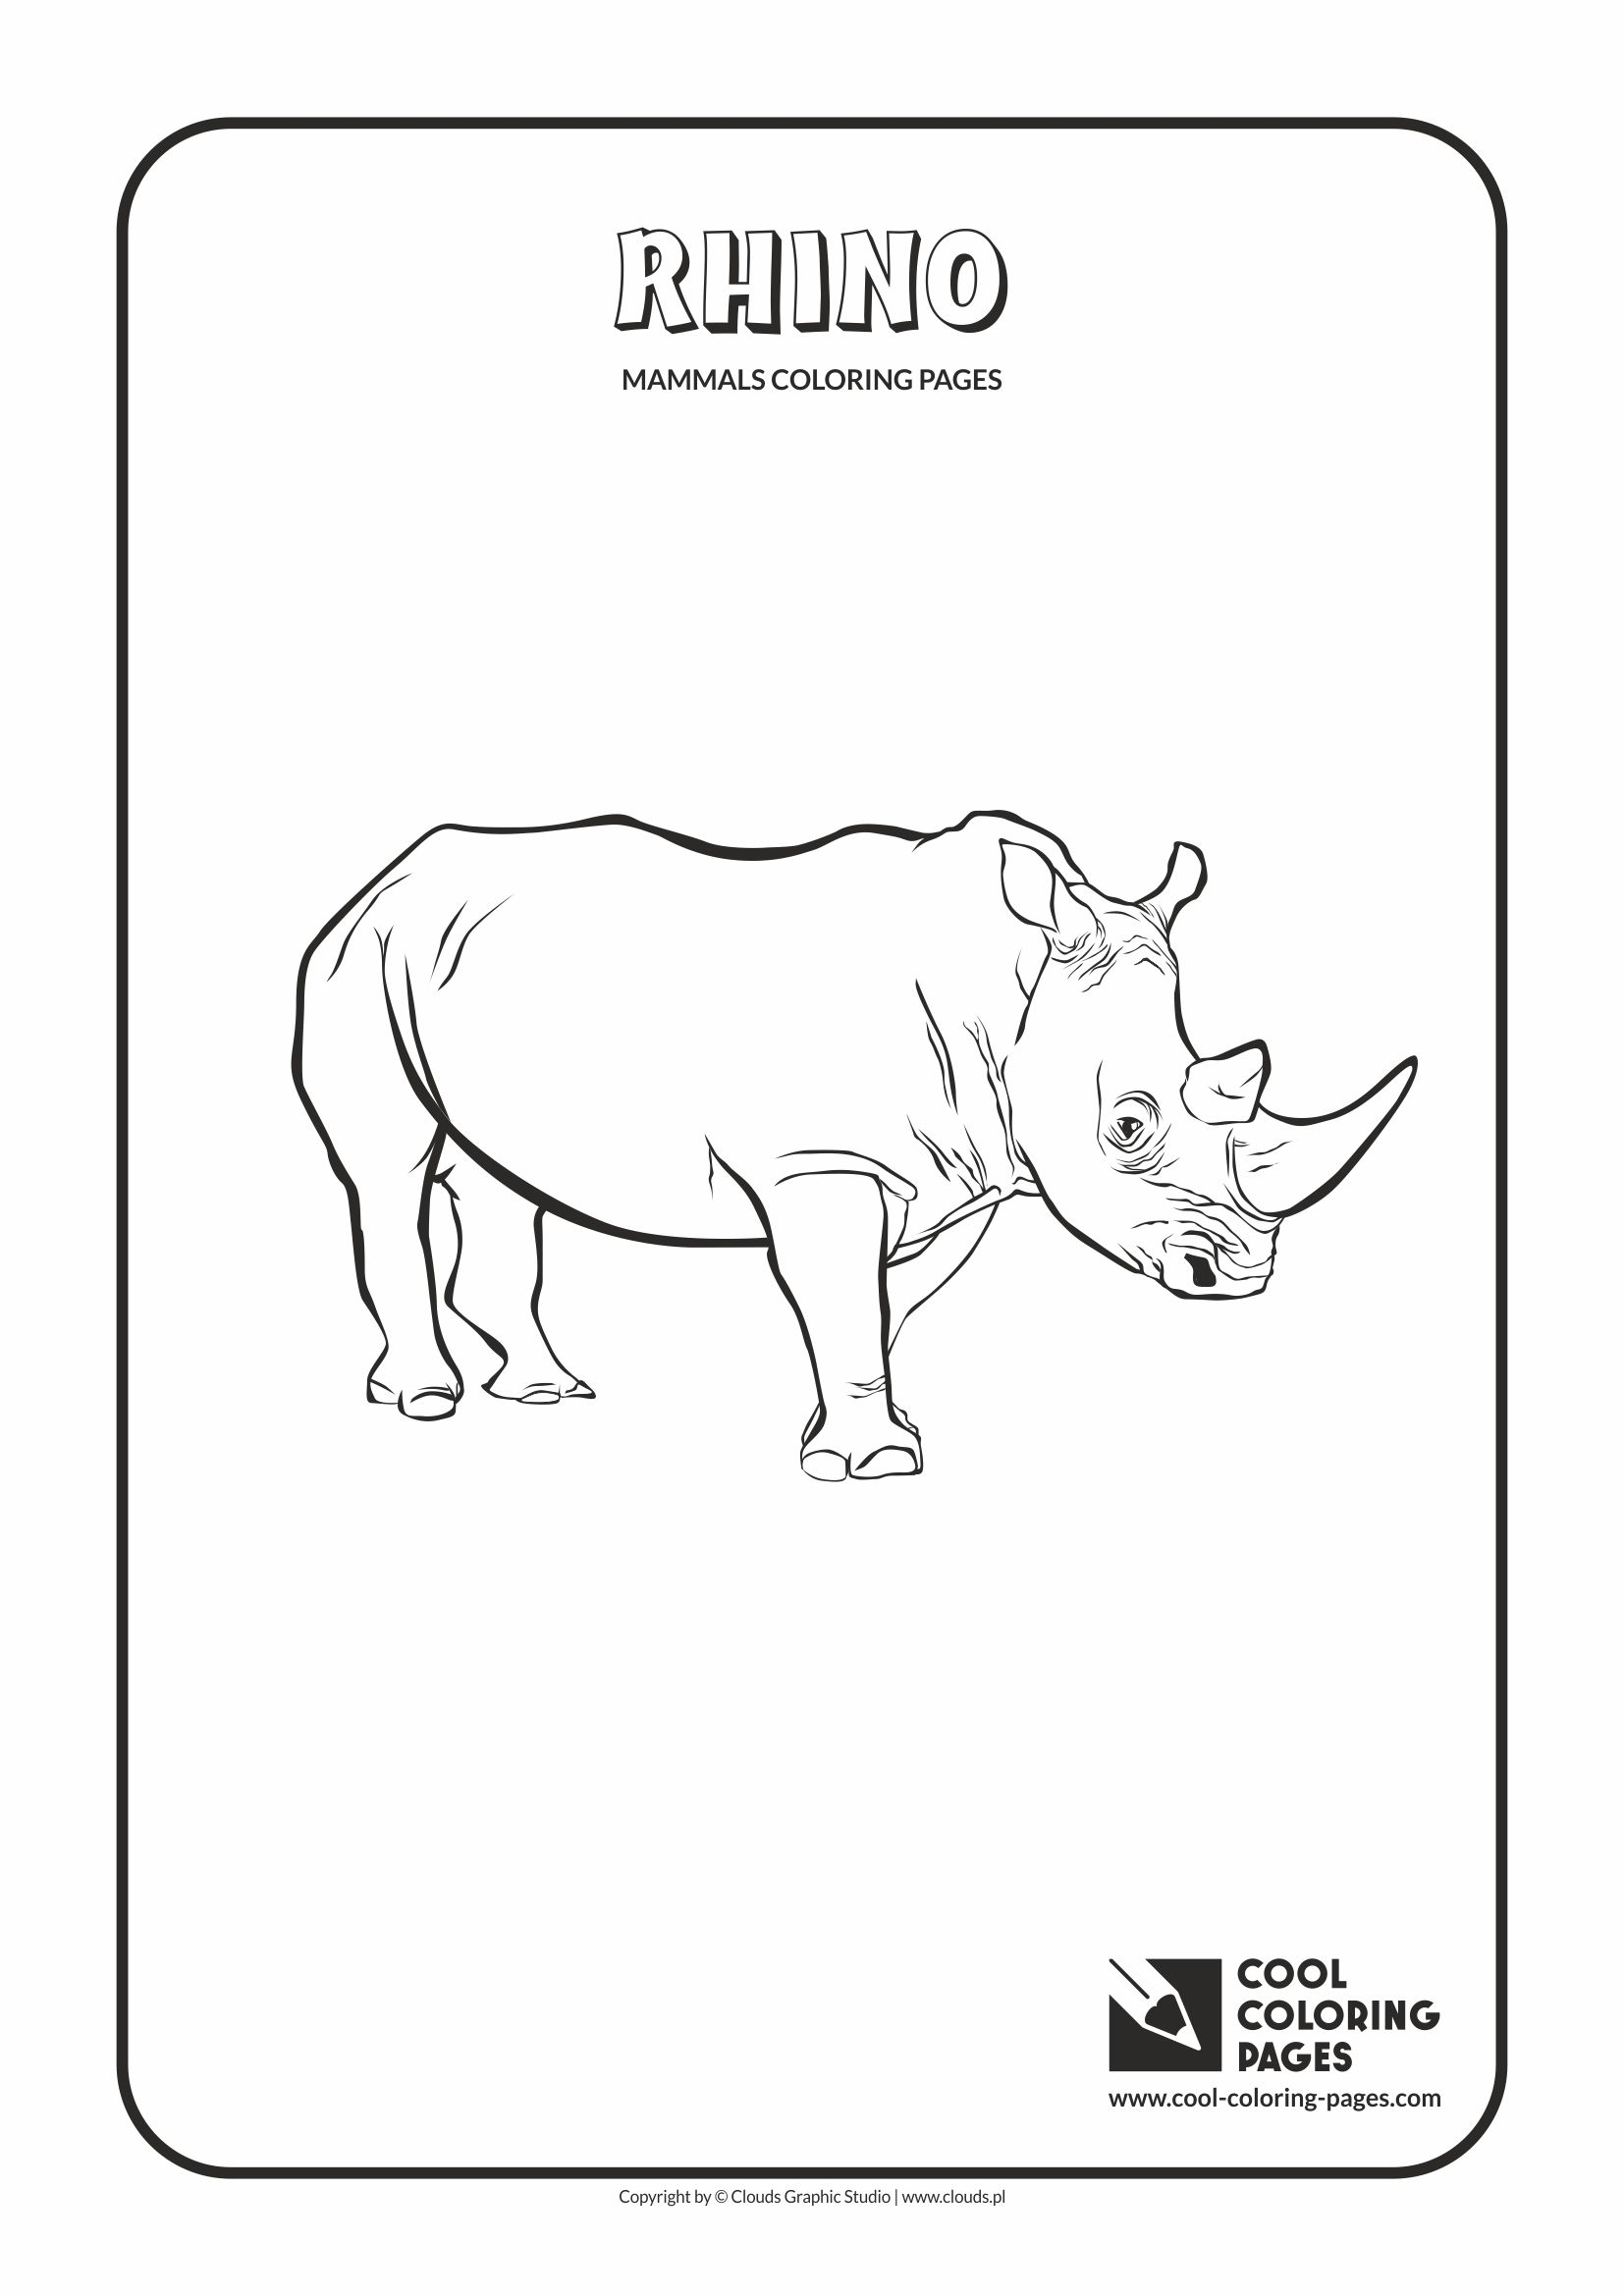 Cool Coloring Pages - Animals / Rhino / Coloring page with rhino